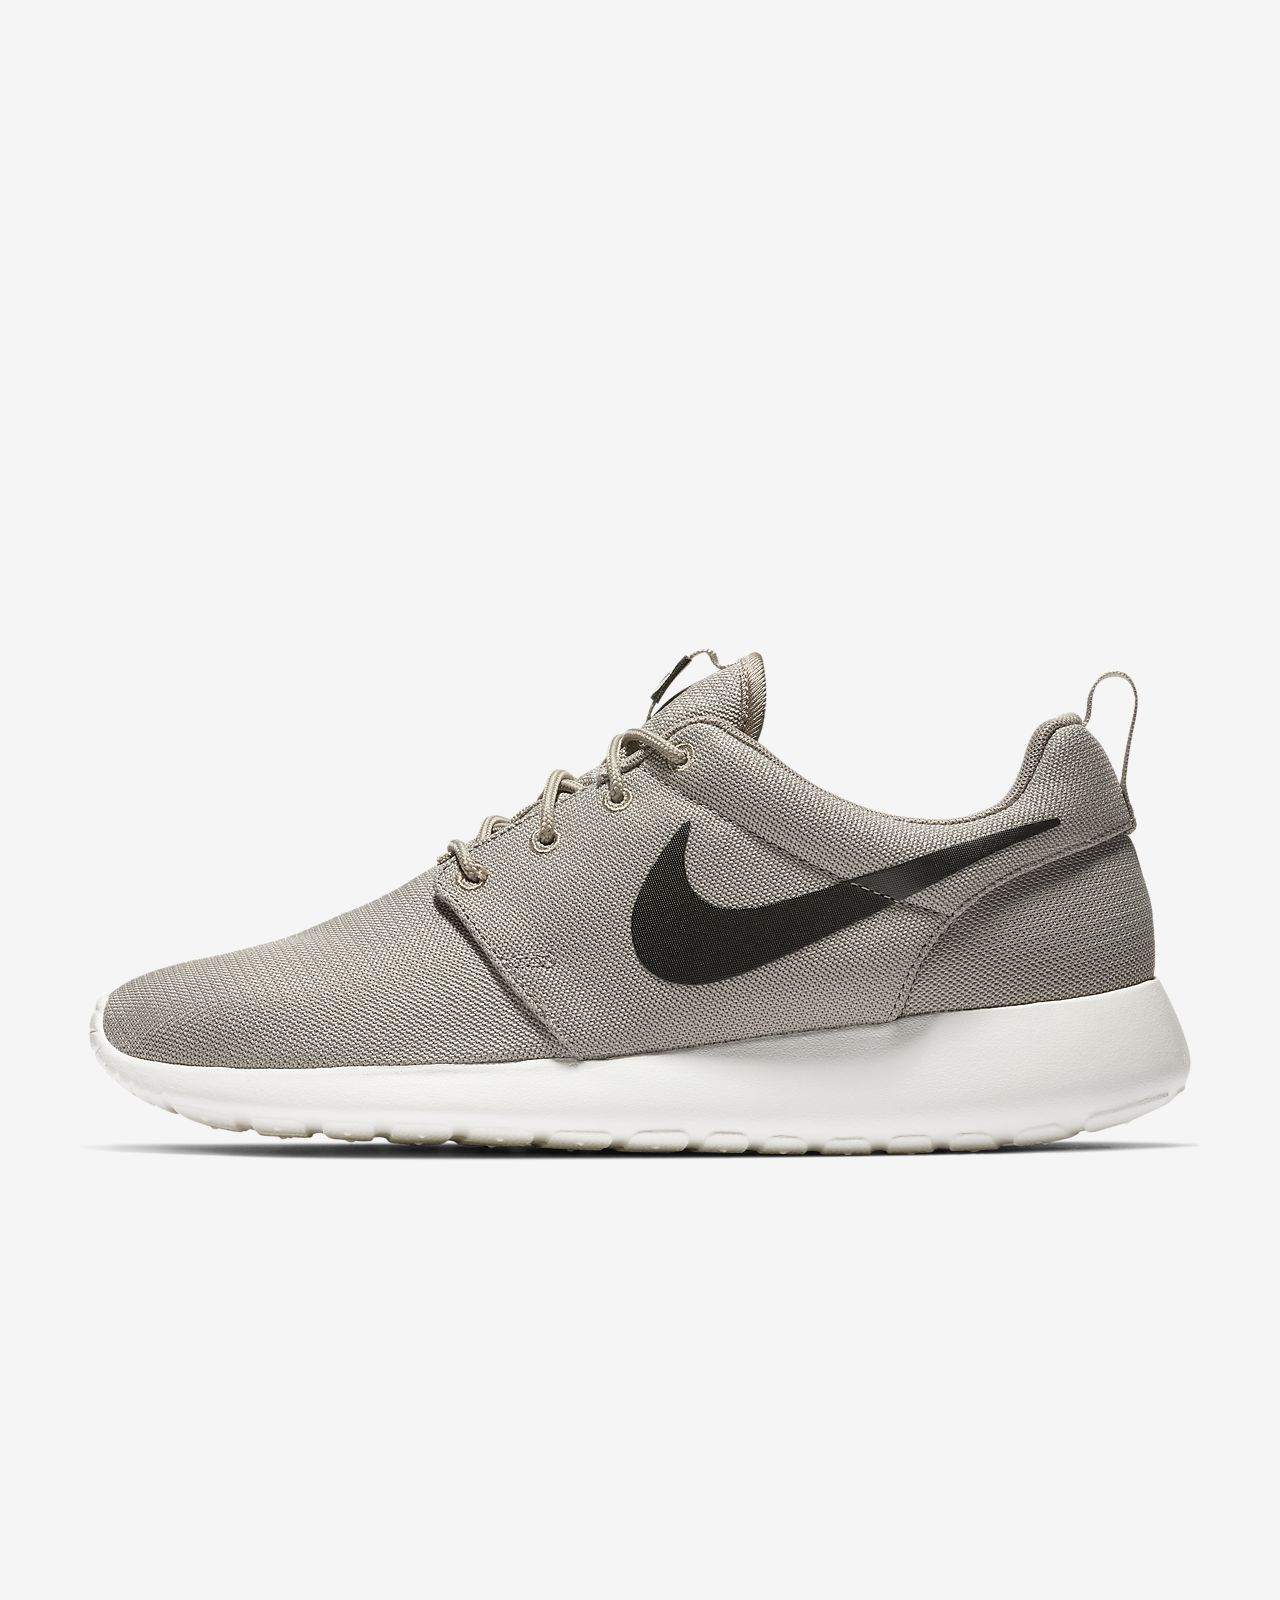 uk availability 15e32 cfa1c ... Nike Roshe One Mens Shoe